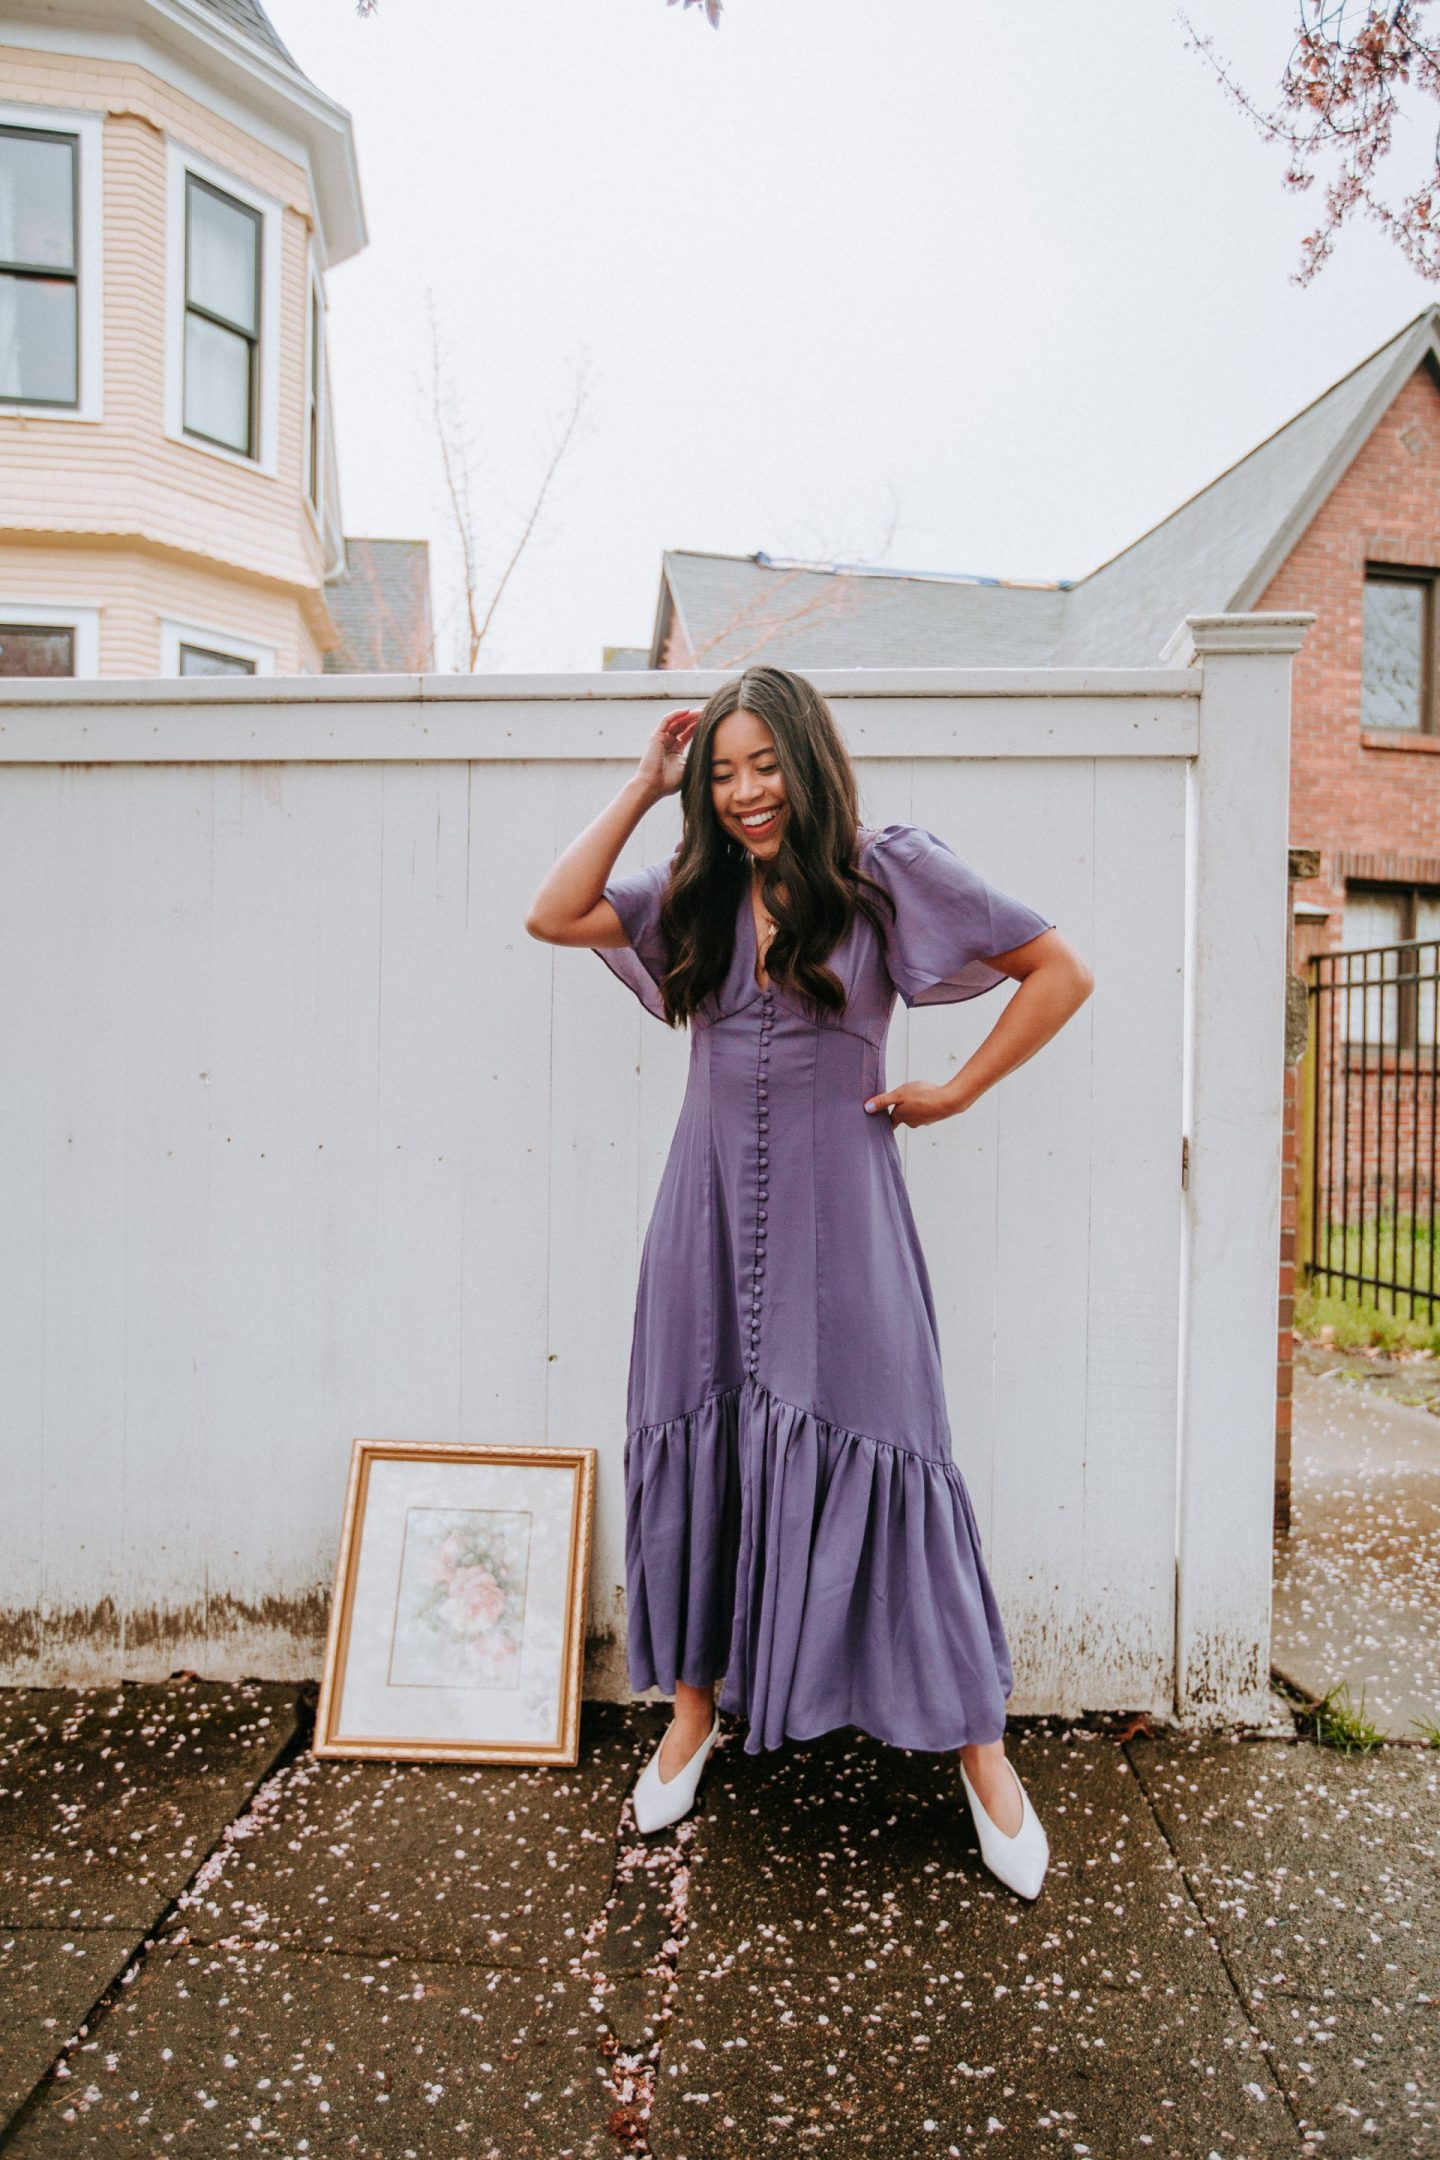 Lavender dress - spring outfit ideas for women - spring photo shoot ideas - pose with cherry blossoms - spring dresses 2021 - - content ideas for Instagram - content tips for influencers - spring bucket list ideas - image from www.emmasedition.com - copyright @emmasedition